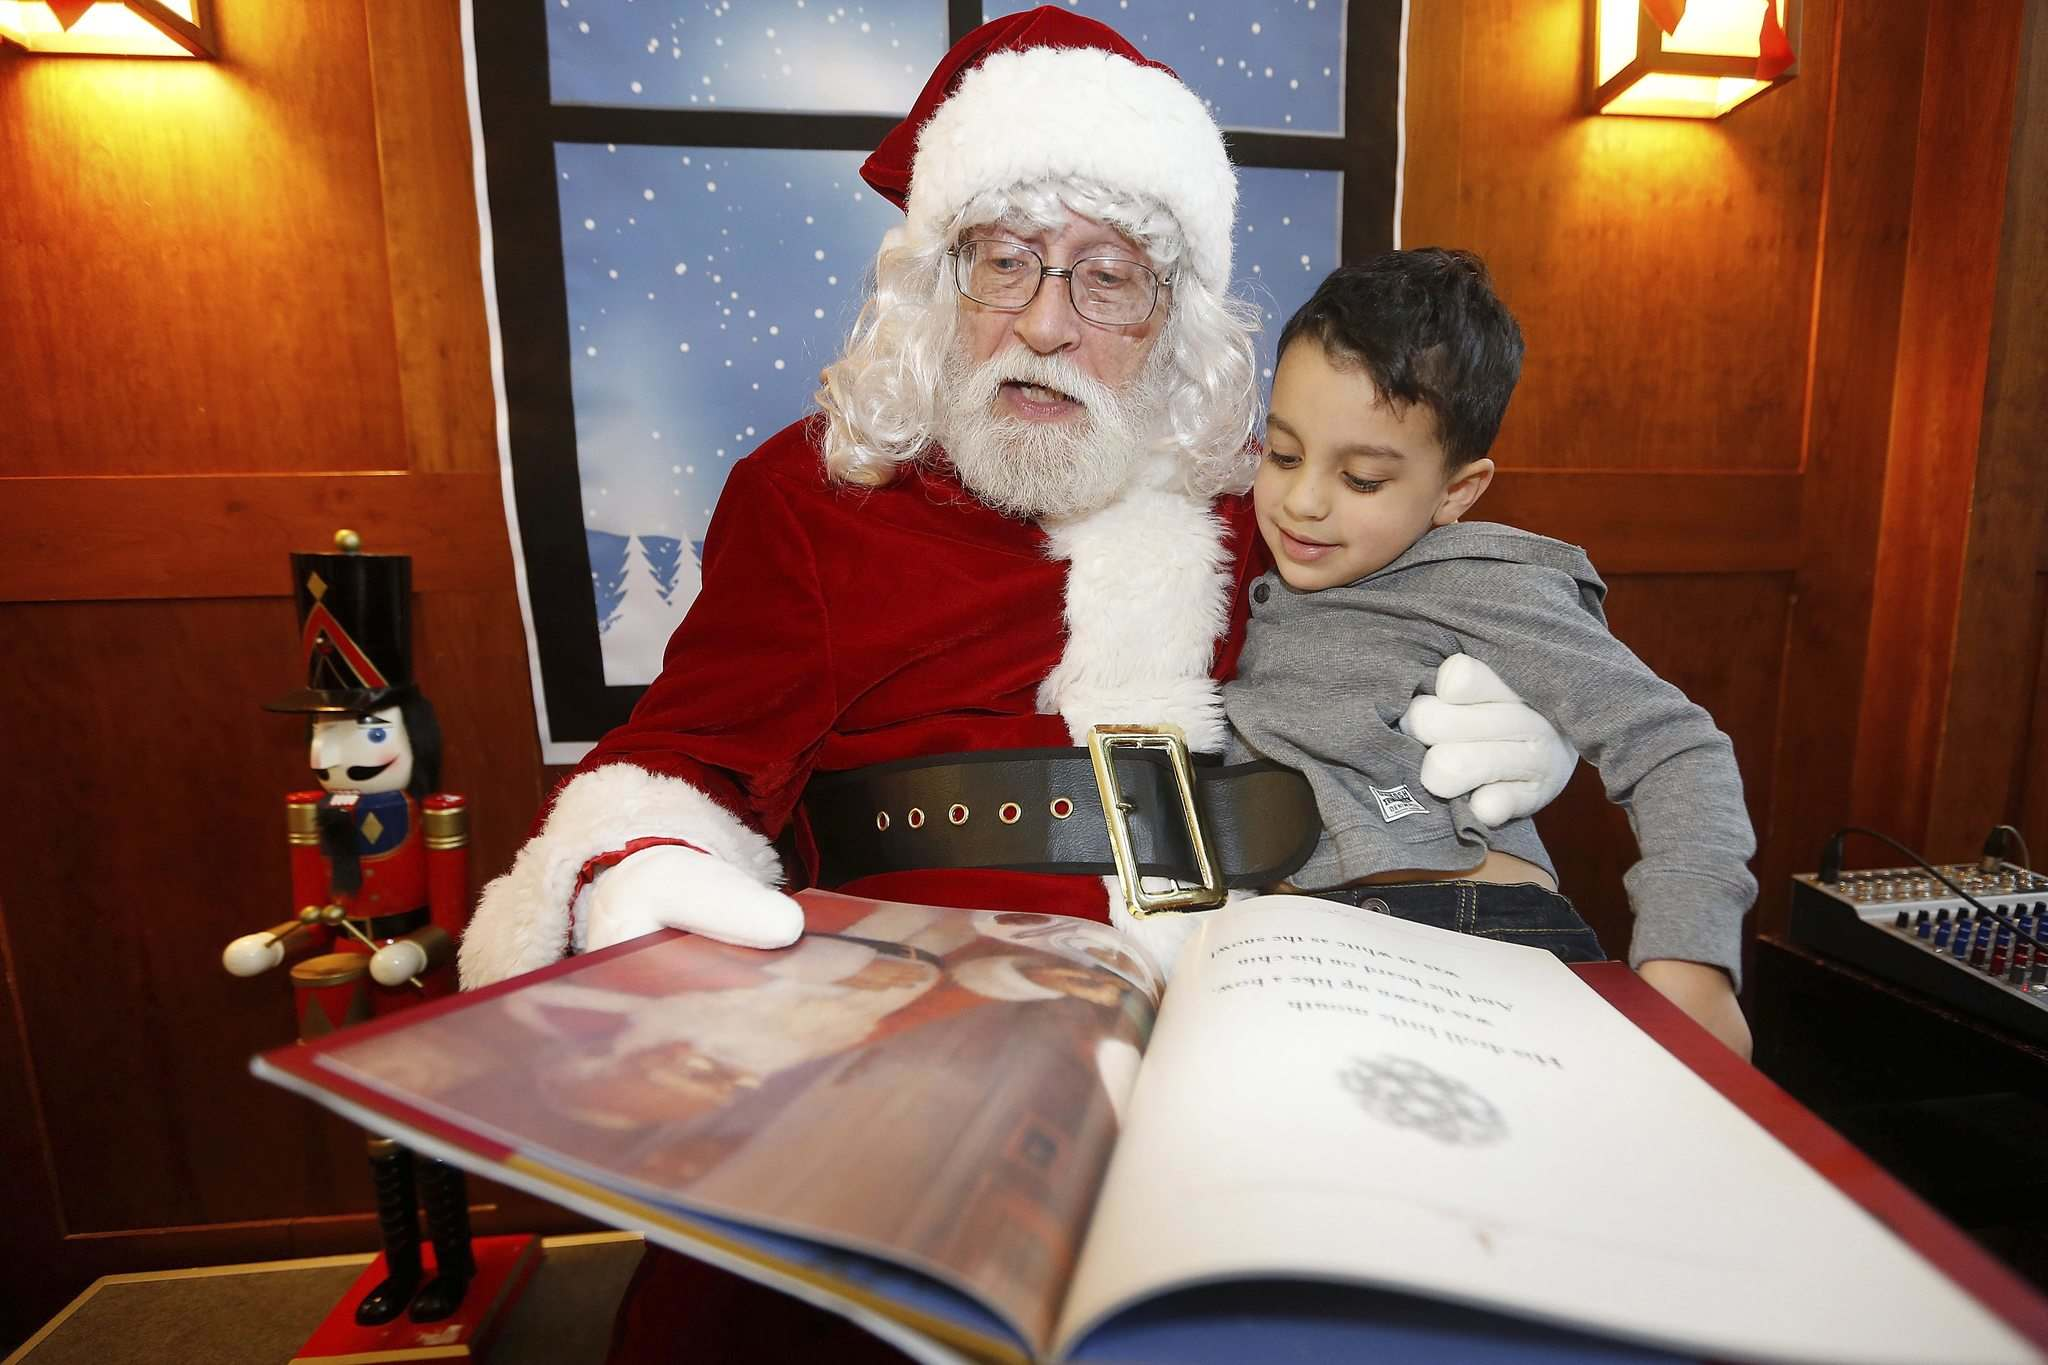 JOHN WOODS / WINNIPEG FREE PRESS</p><p>Santa Claus and four-year-old Nicholas Cambell enjoy a book together at McNally Robinson Booksellers' Grant Park location.</p>